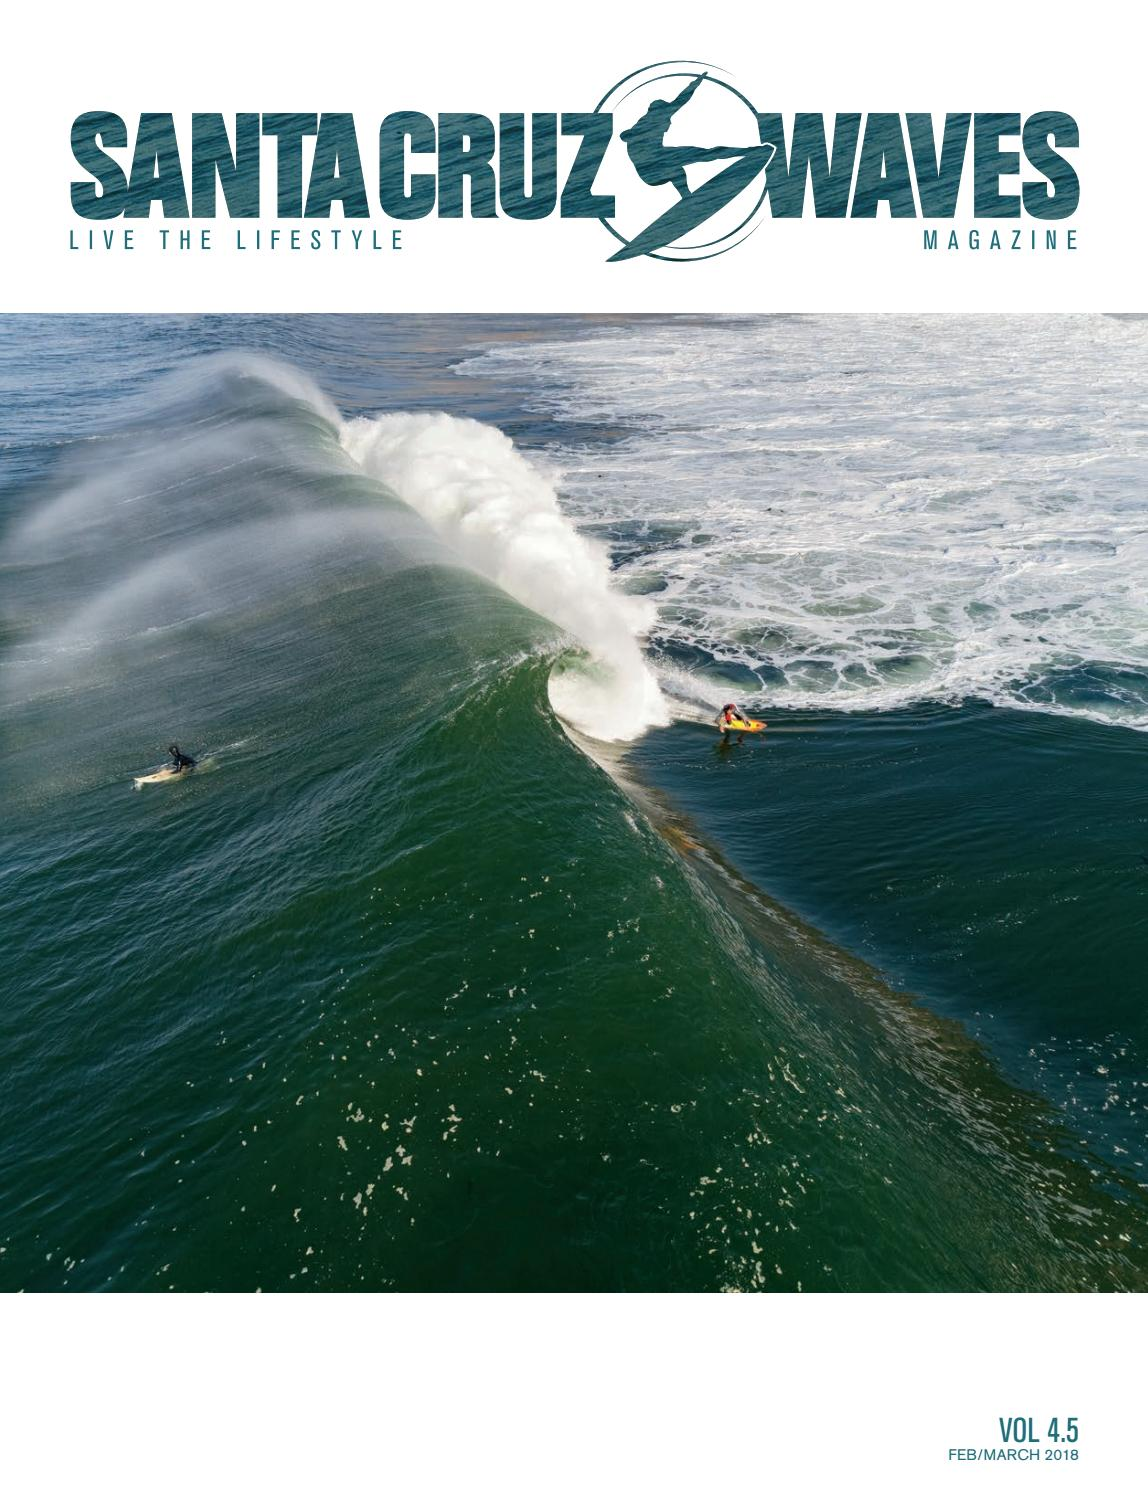 Santa Cruz Waves Feb/March 2018 Issue 4.5 by Santa Cruz Waves - issuu